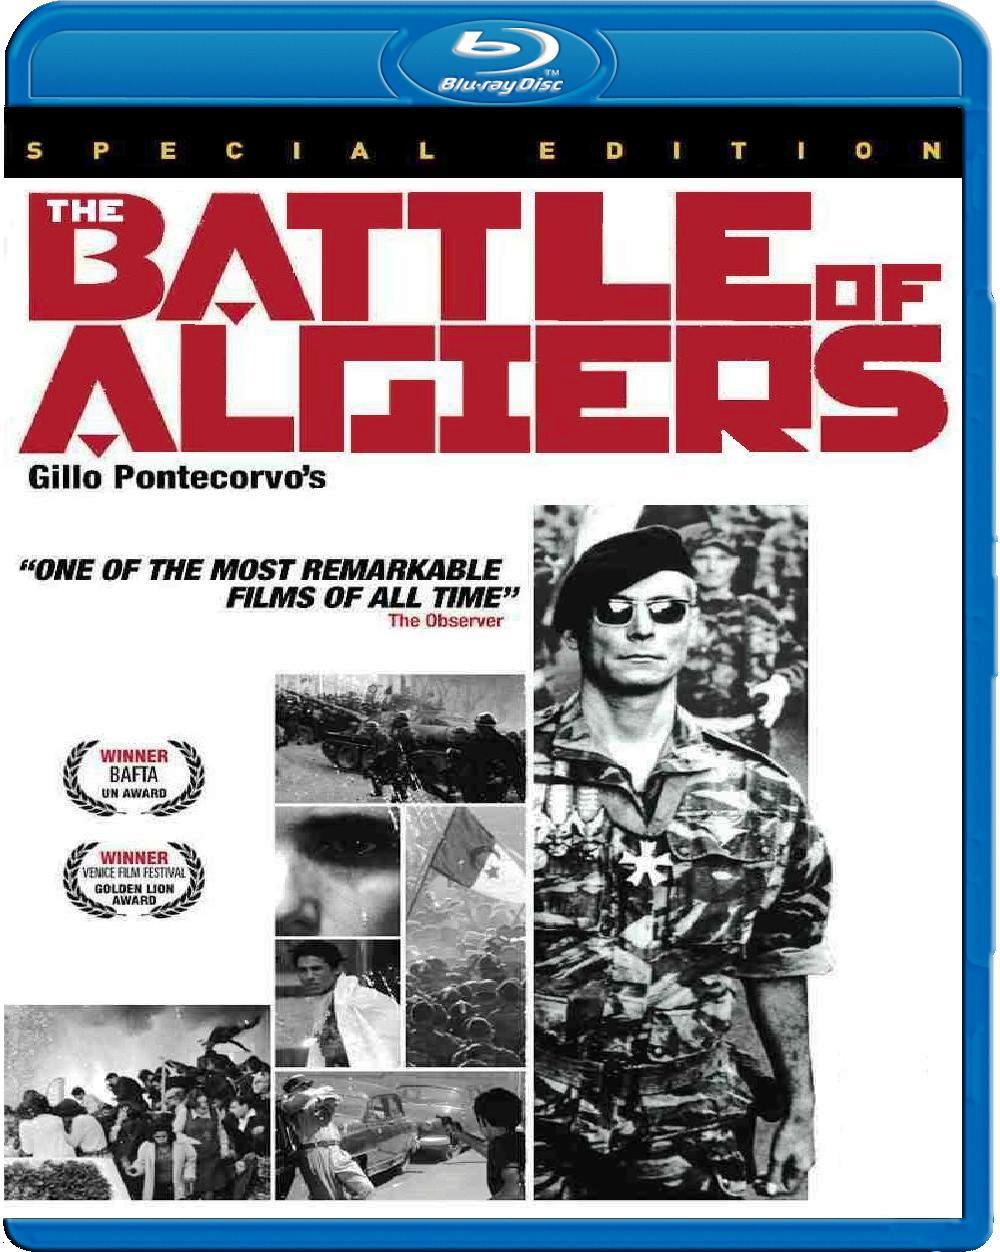 The Battle of Algiers (1966) The Battle of Algiers 1966 ScriptedTalk 1000x1252 Movie-index.com